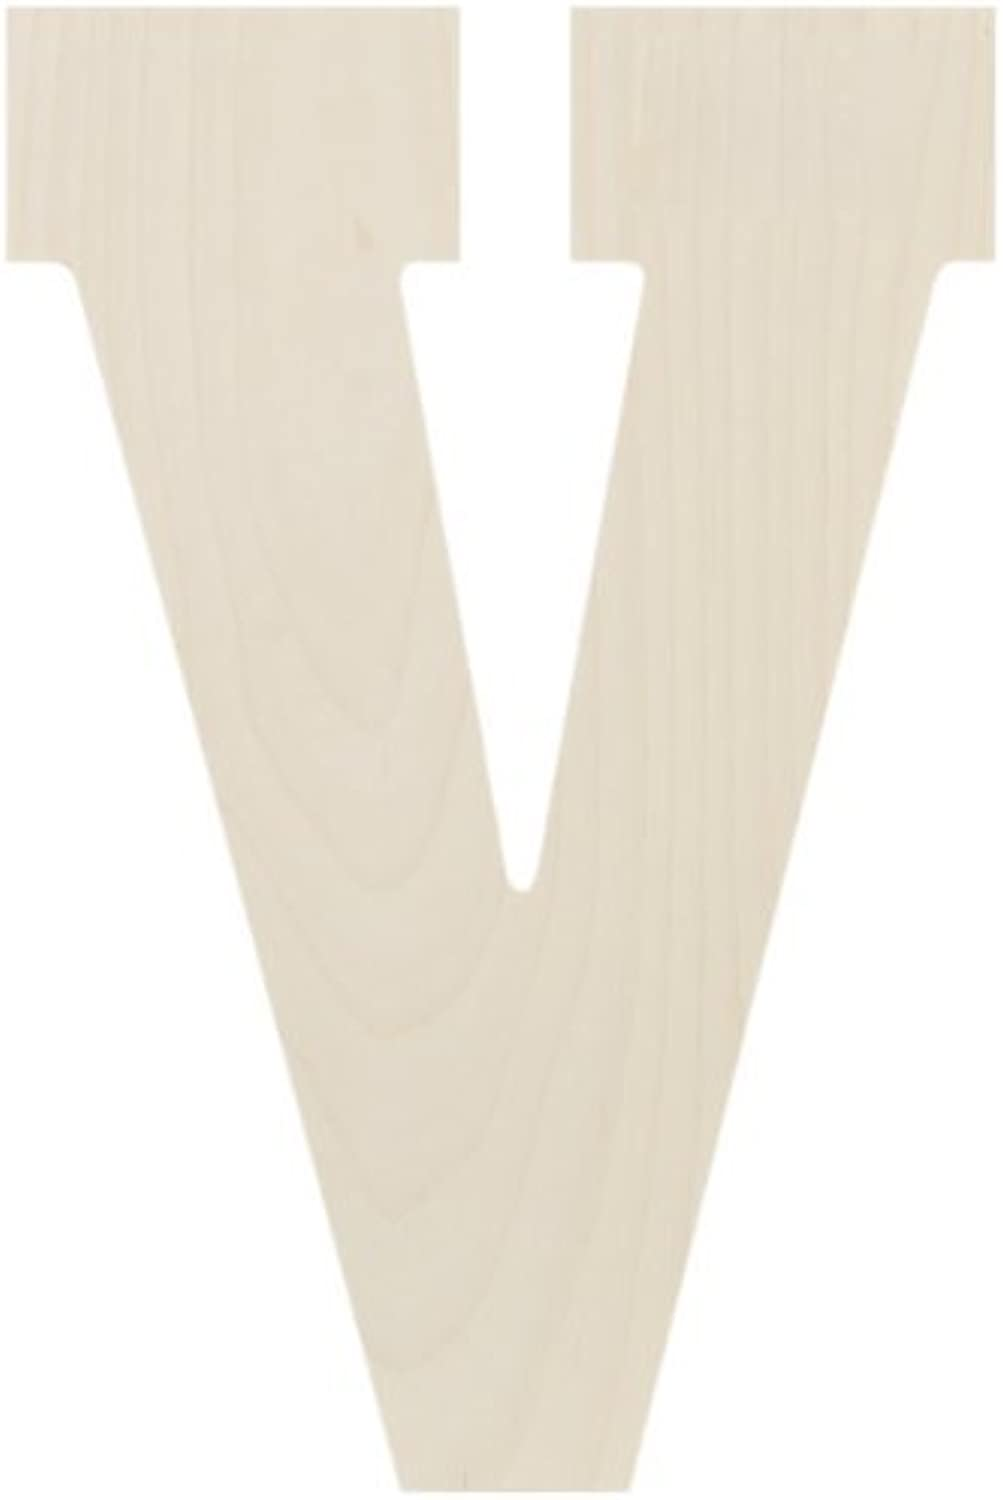 Baltic Birch Collegiate Font Letters & Numbers 13.5V by Things for You